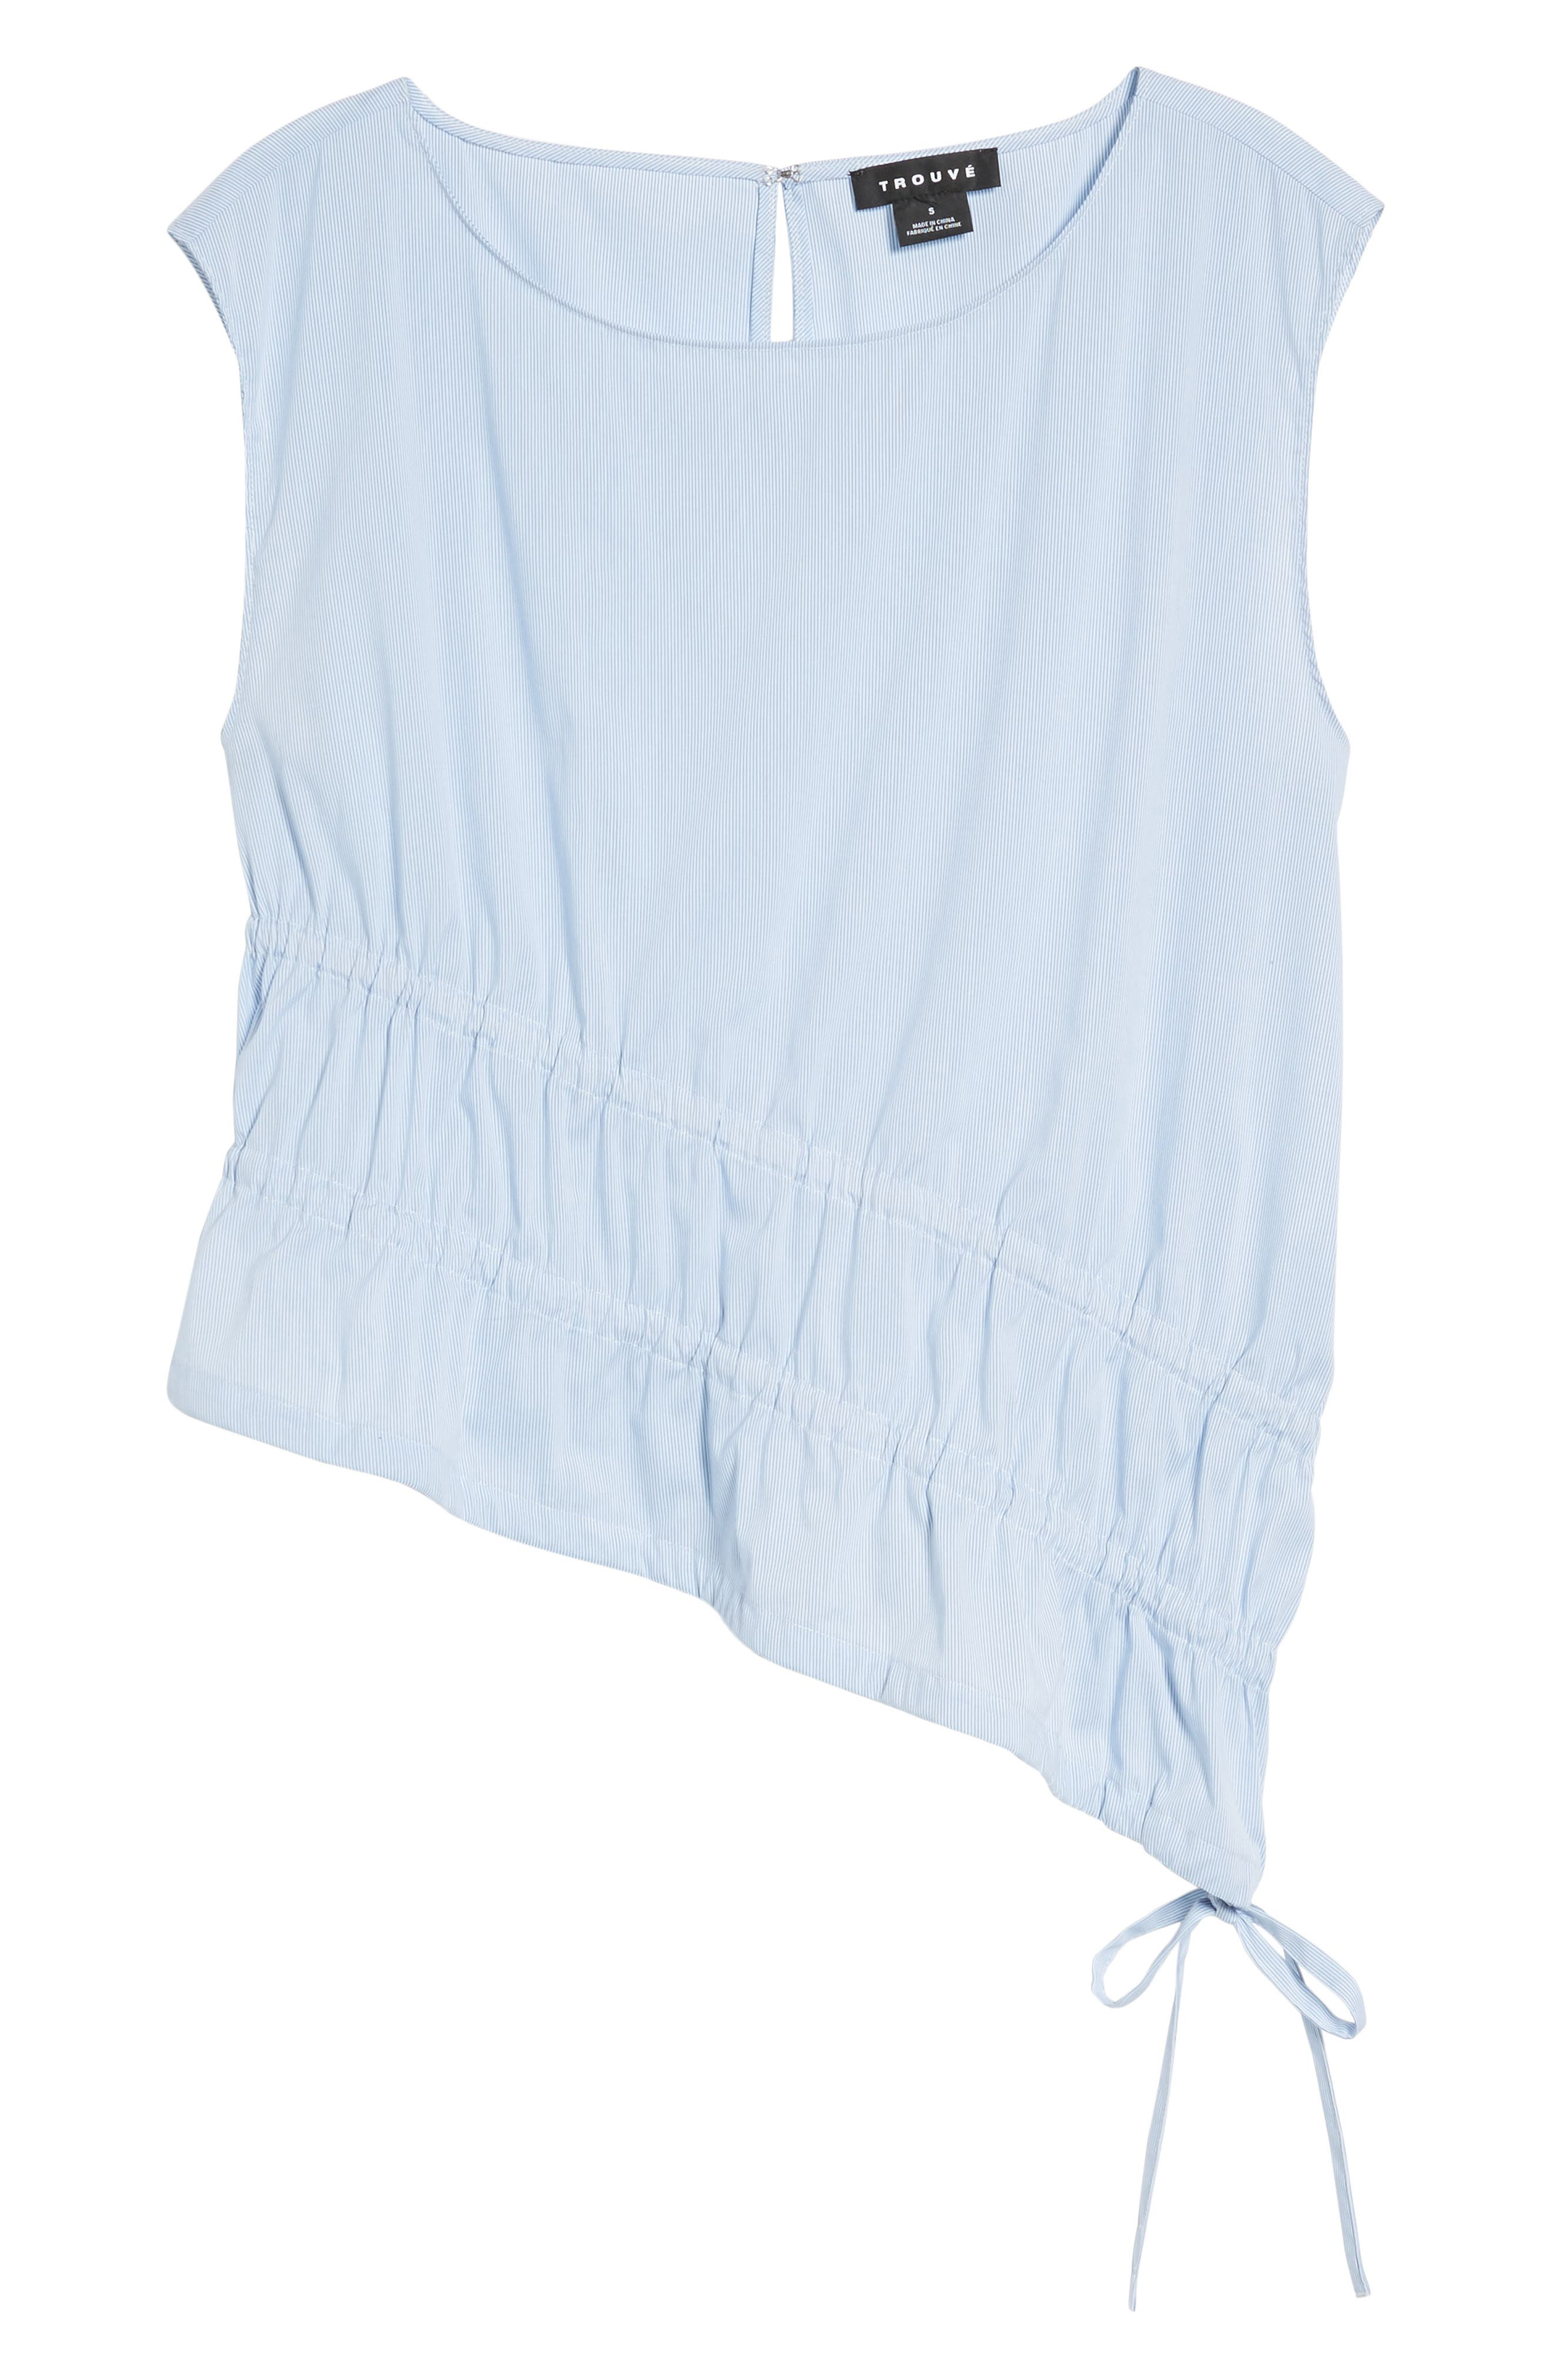 Ruched Poplin Top,                             Alternate thumbnail 7, color,                             Blue/ White Pinstripe